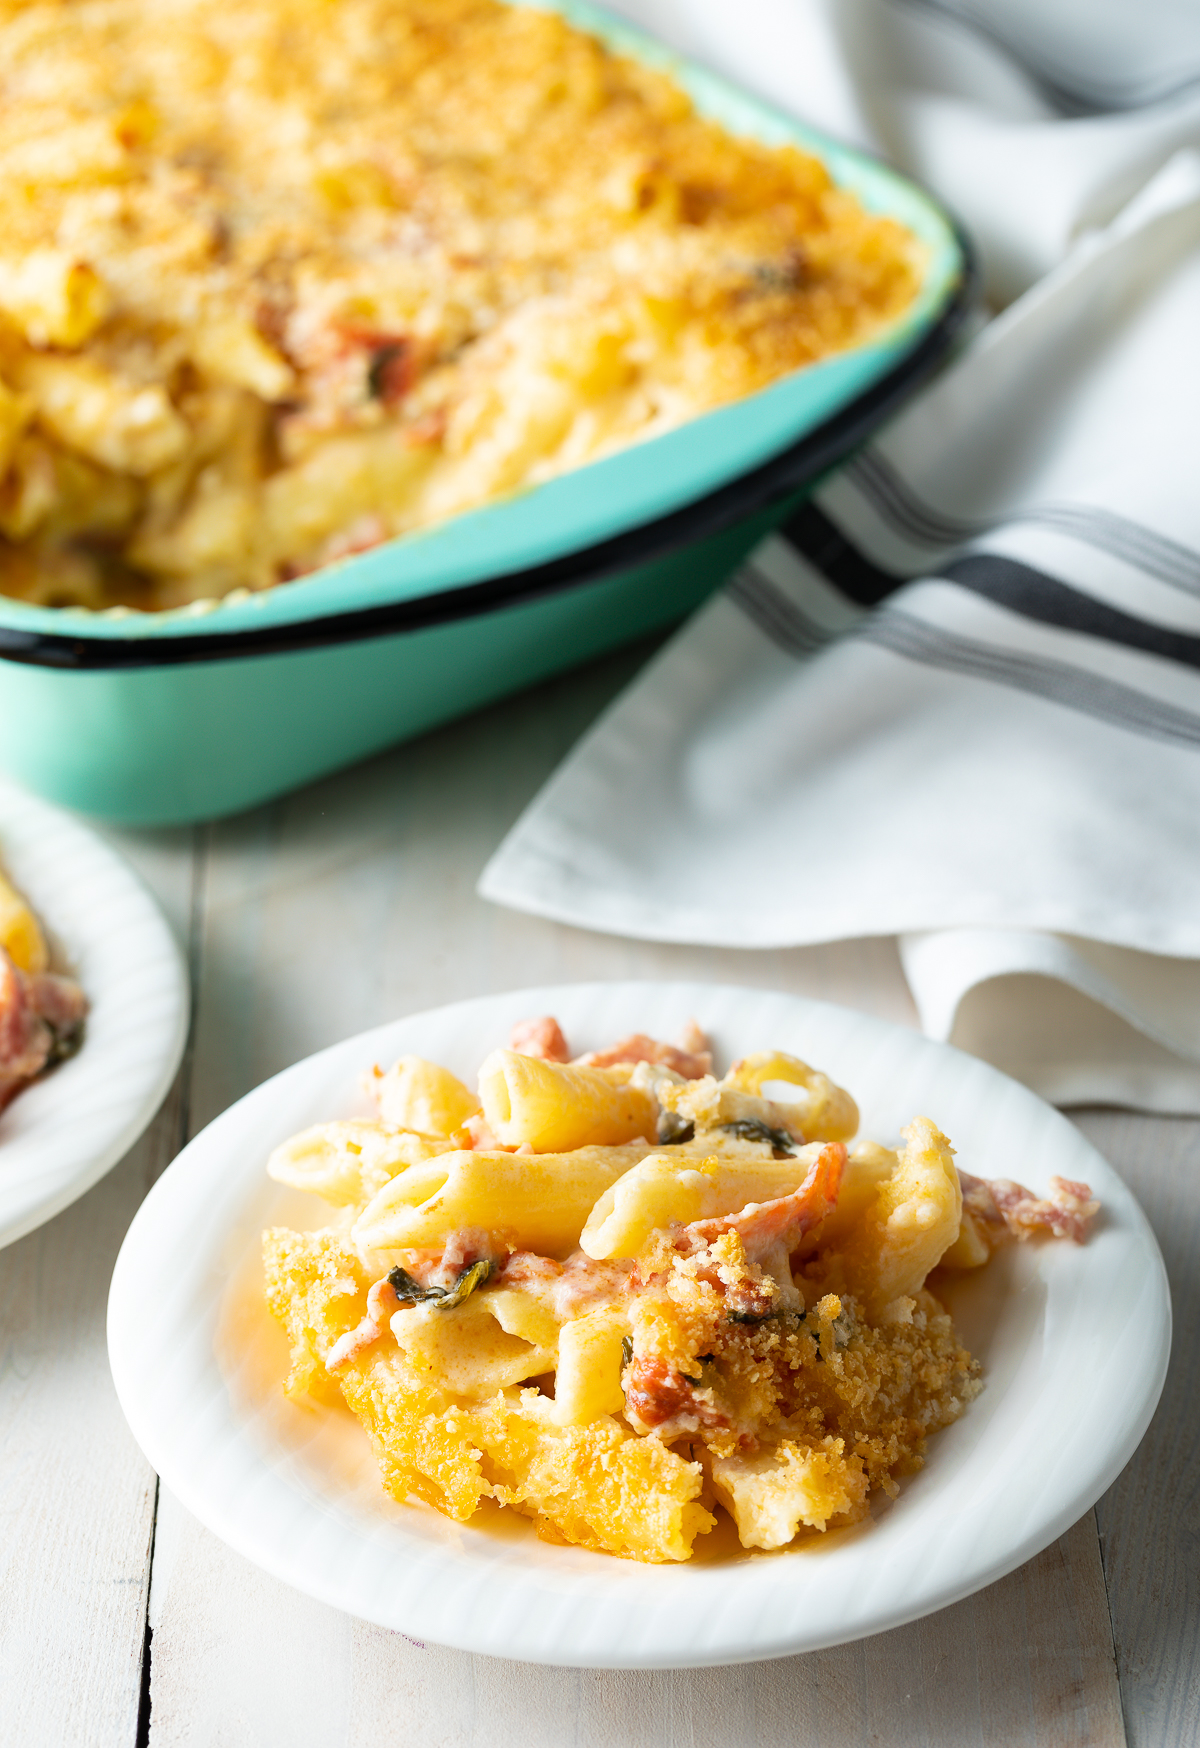 Italian Baked Mac and Cheese Recipe | ASpicyPerspective.com #macandcheese #pasta #delallo